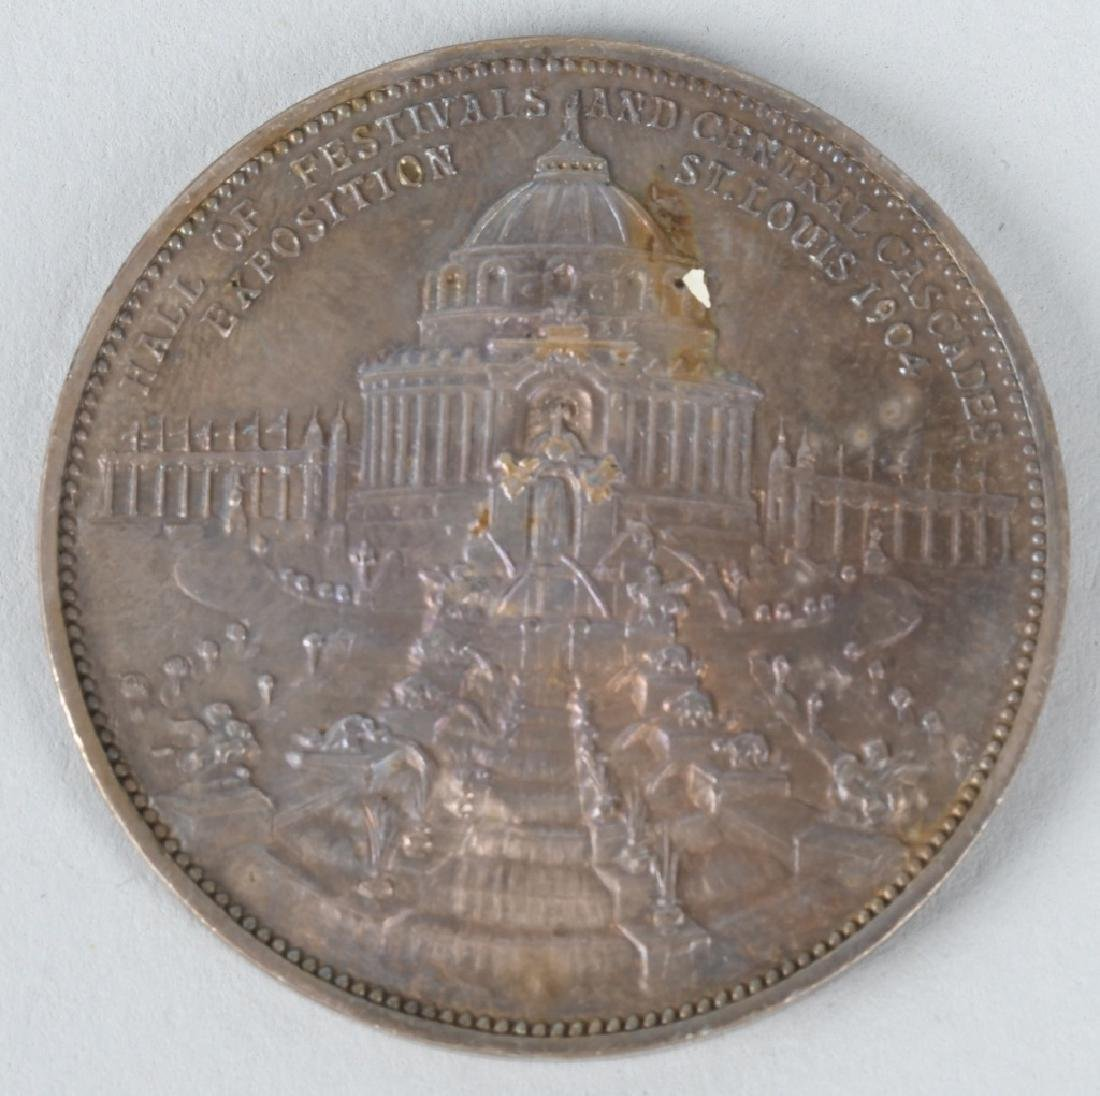 EXPOSITION & WORLDS FAIR COINS & MEDALS - 9